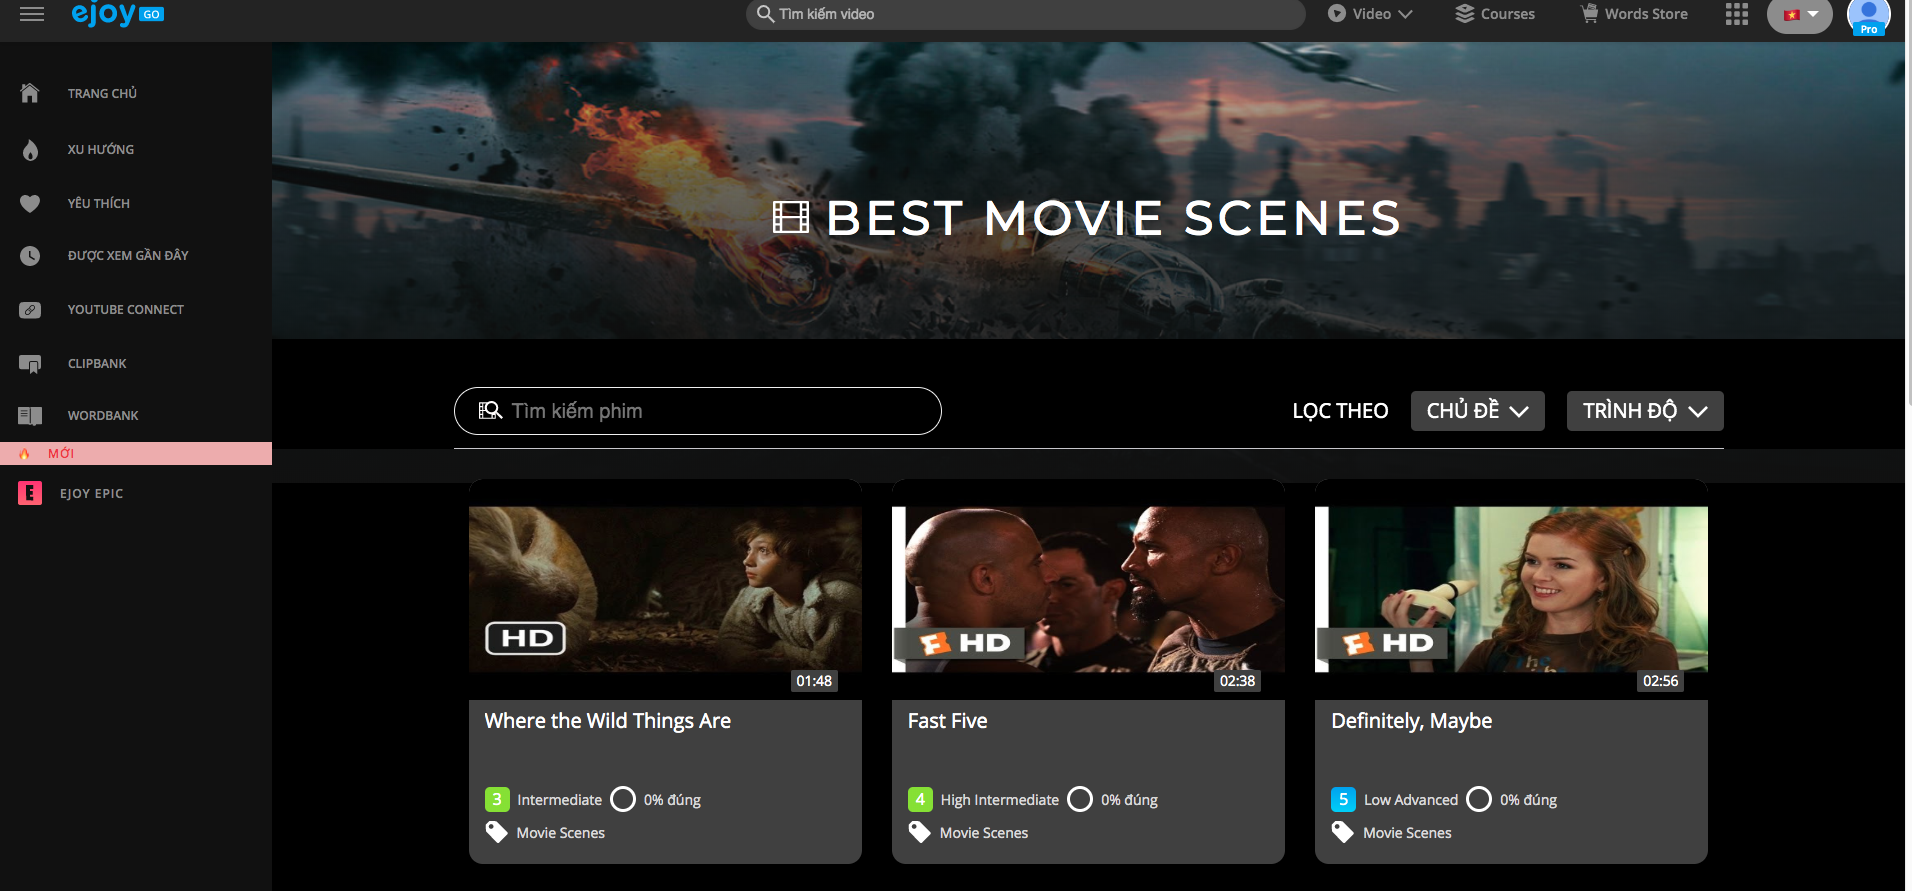 Access eJOY Go and select Movie Training/ Best movie scenes